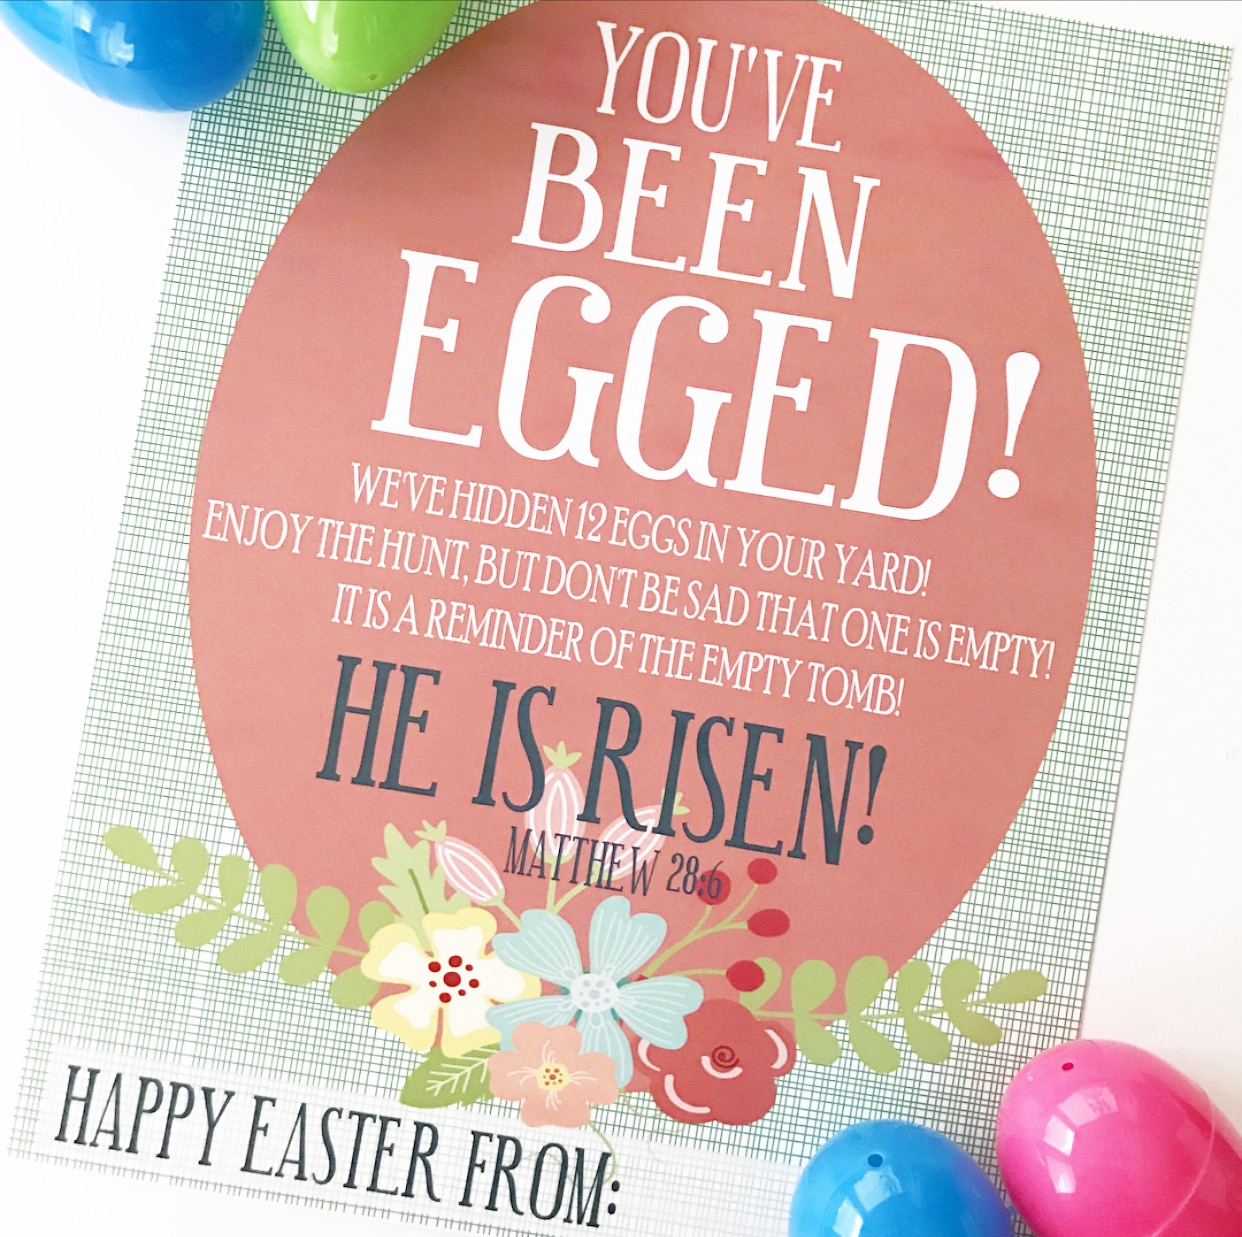 image about You've Been Egged Printable called Youve Been Egged!! - Crisp Collective